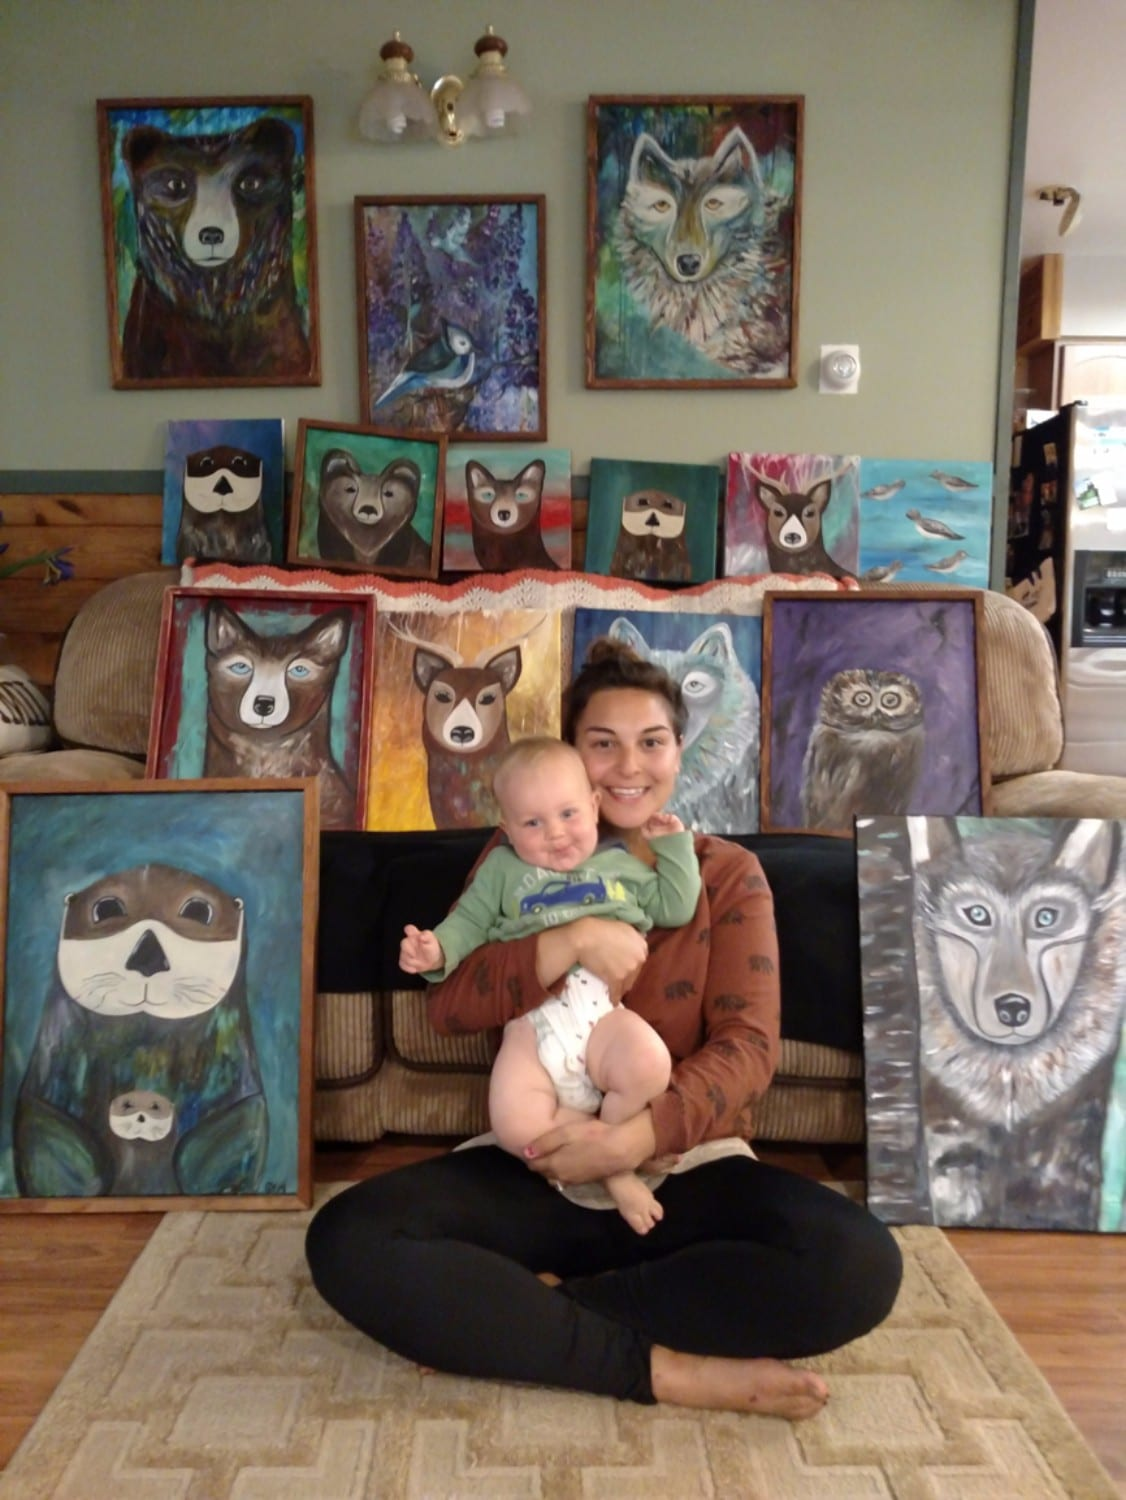 Artist Brittany Banks, pictured here two years ago with her son, Brandon, now 3 years old, paints colorful images of Alaska's animals, family name signs and welcome signs. Her original designs are also available on coffee mugs, cards, and clothing. Photo courtesy Brittany Banks/For The Cordova Times